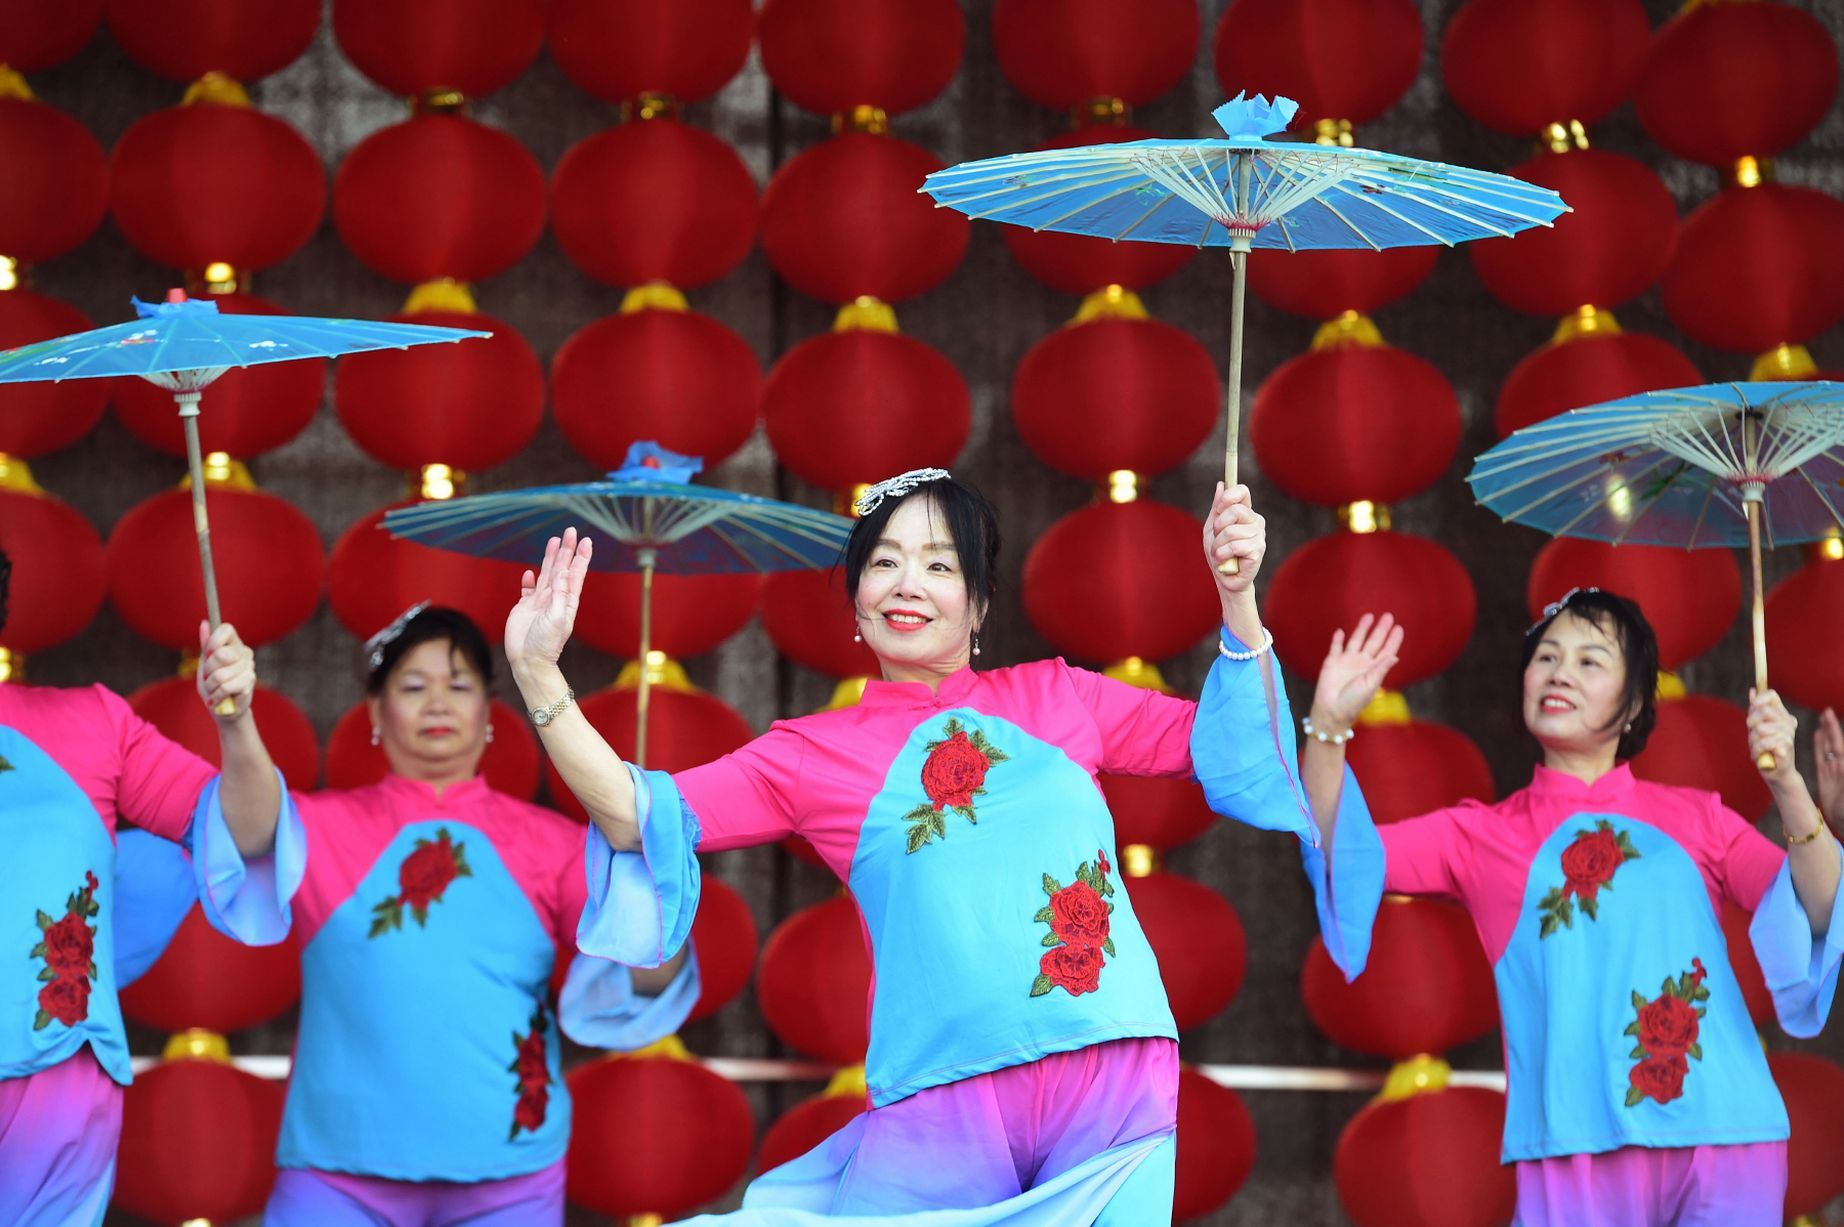 21 stunning pictures of Chinese New Year celebrations in